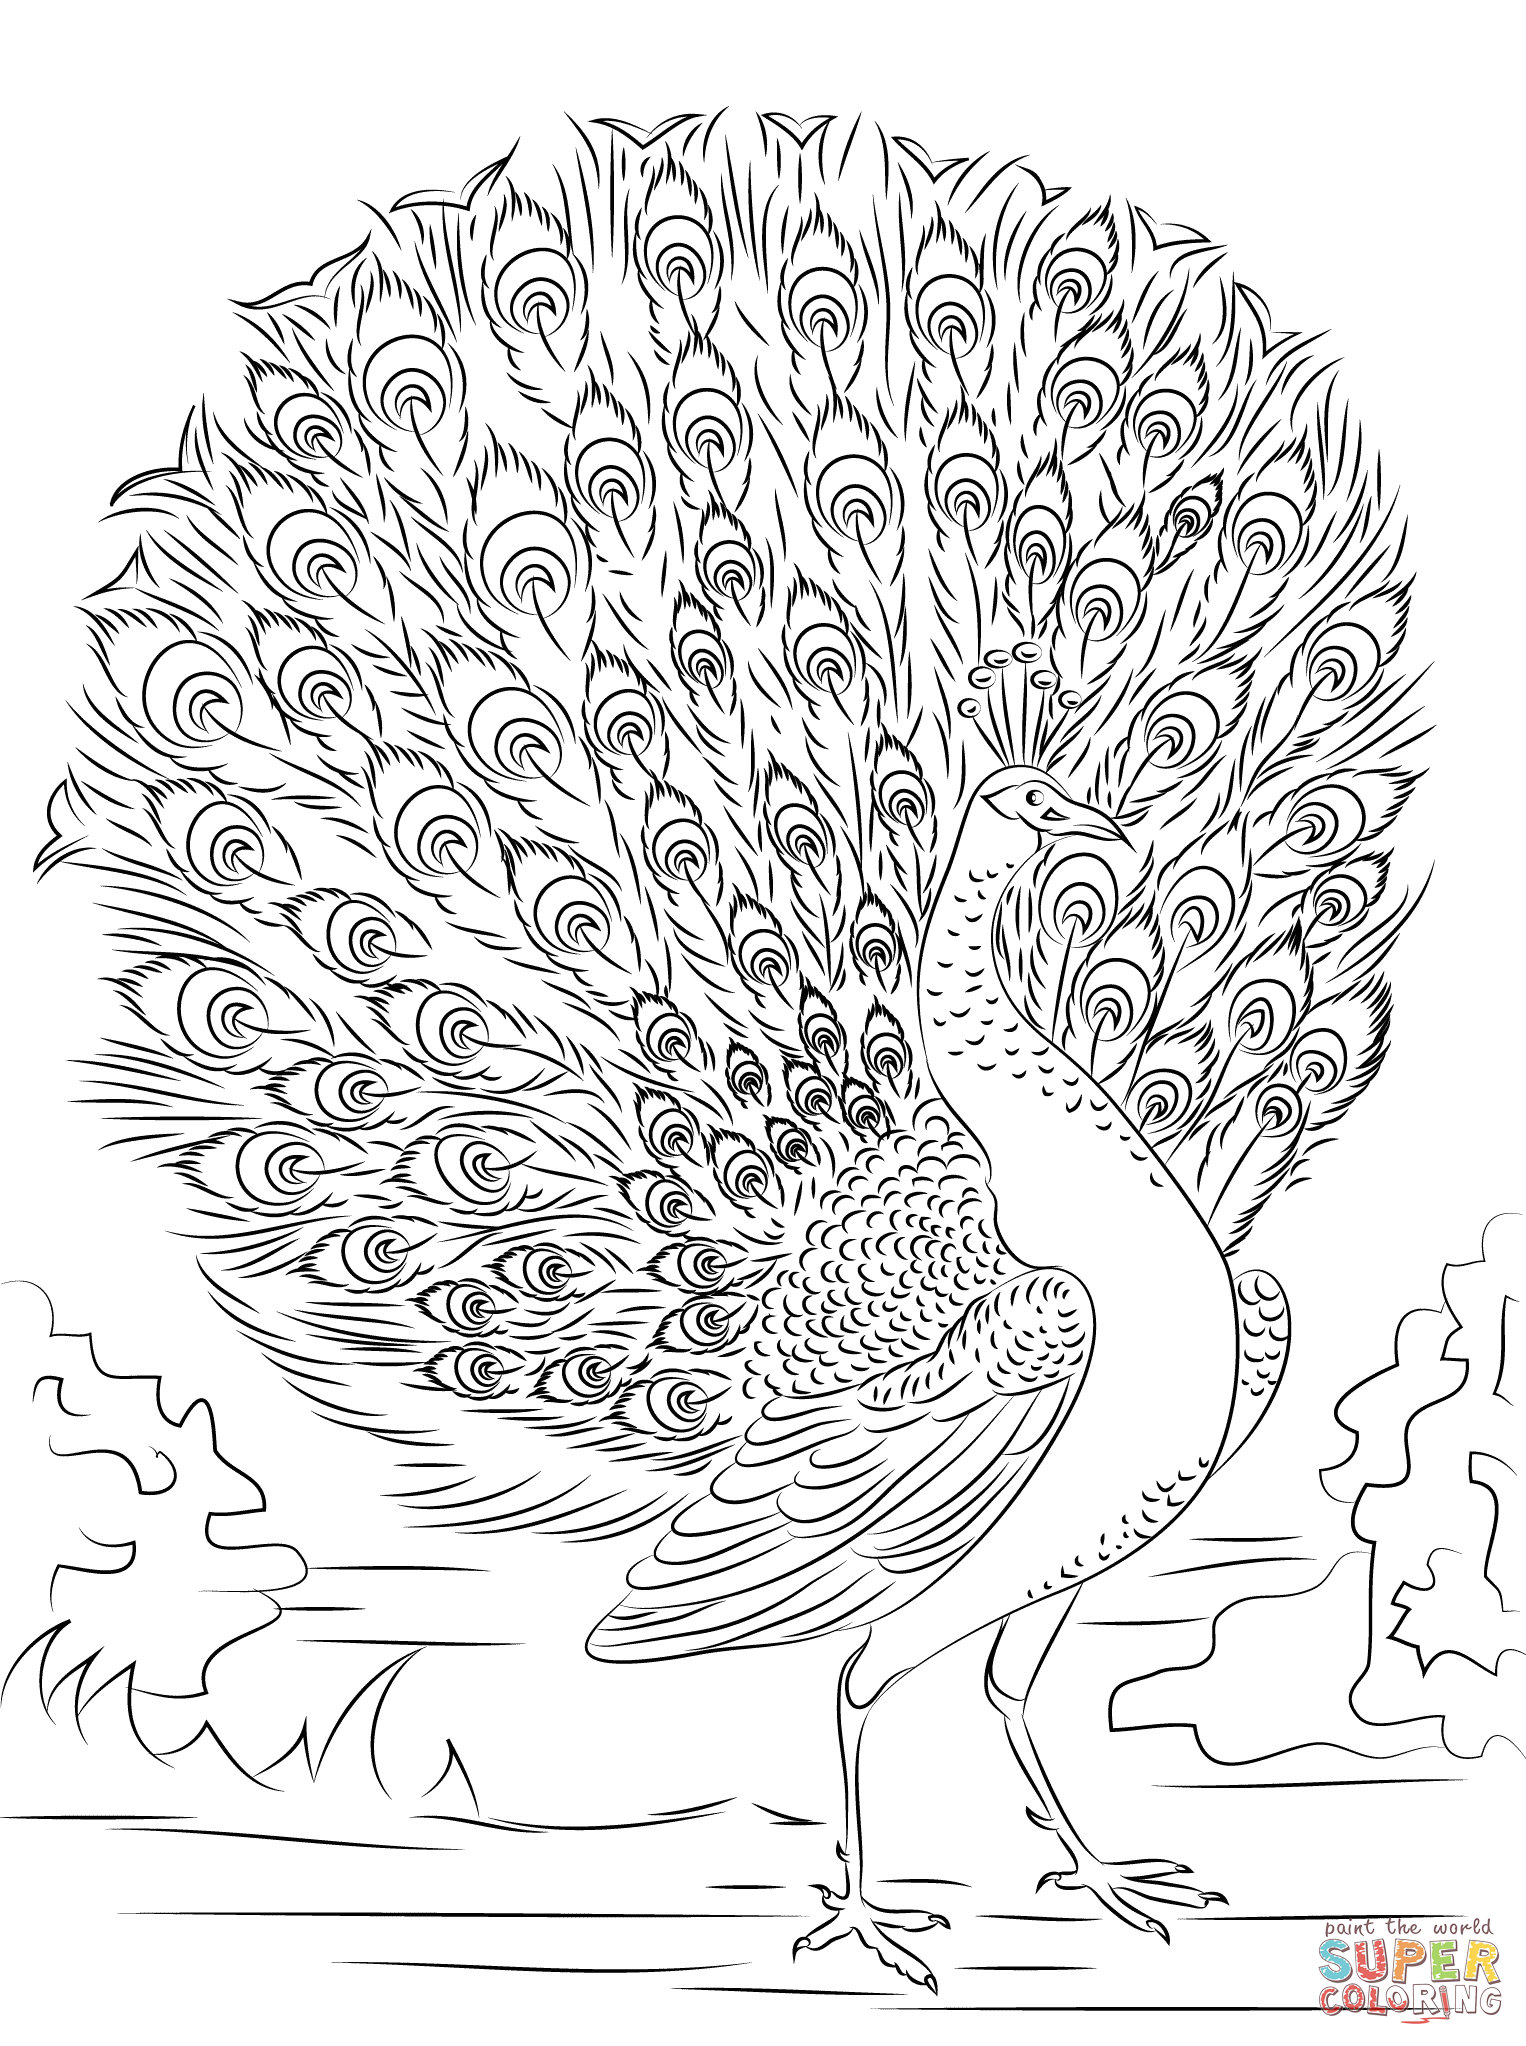 Advanced Coloring Pages for Artists Bing Images coloring pages